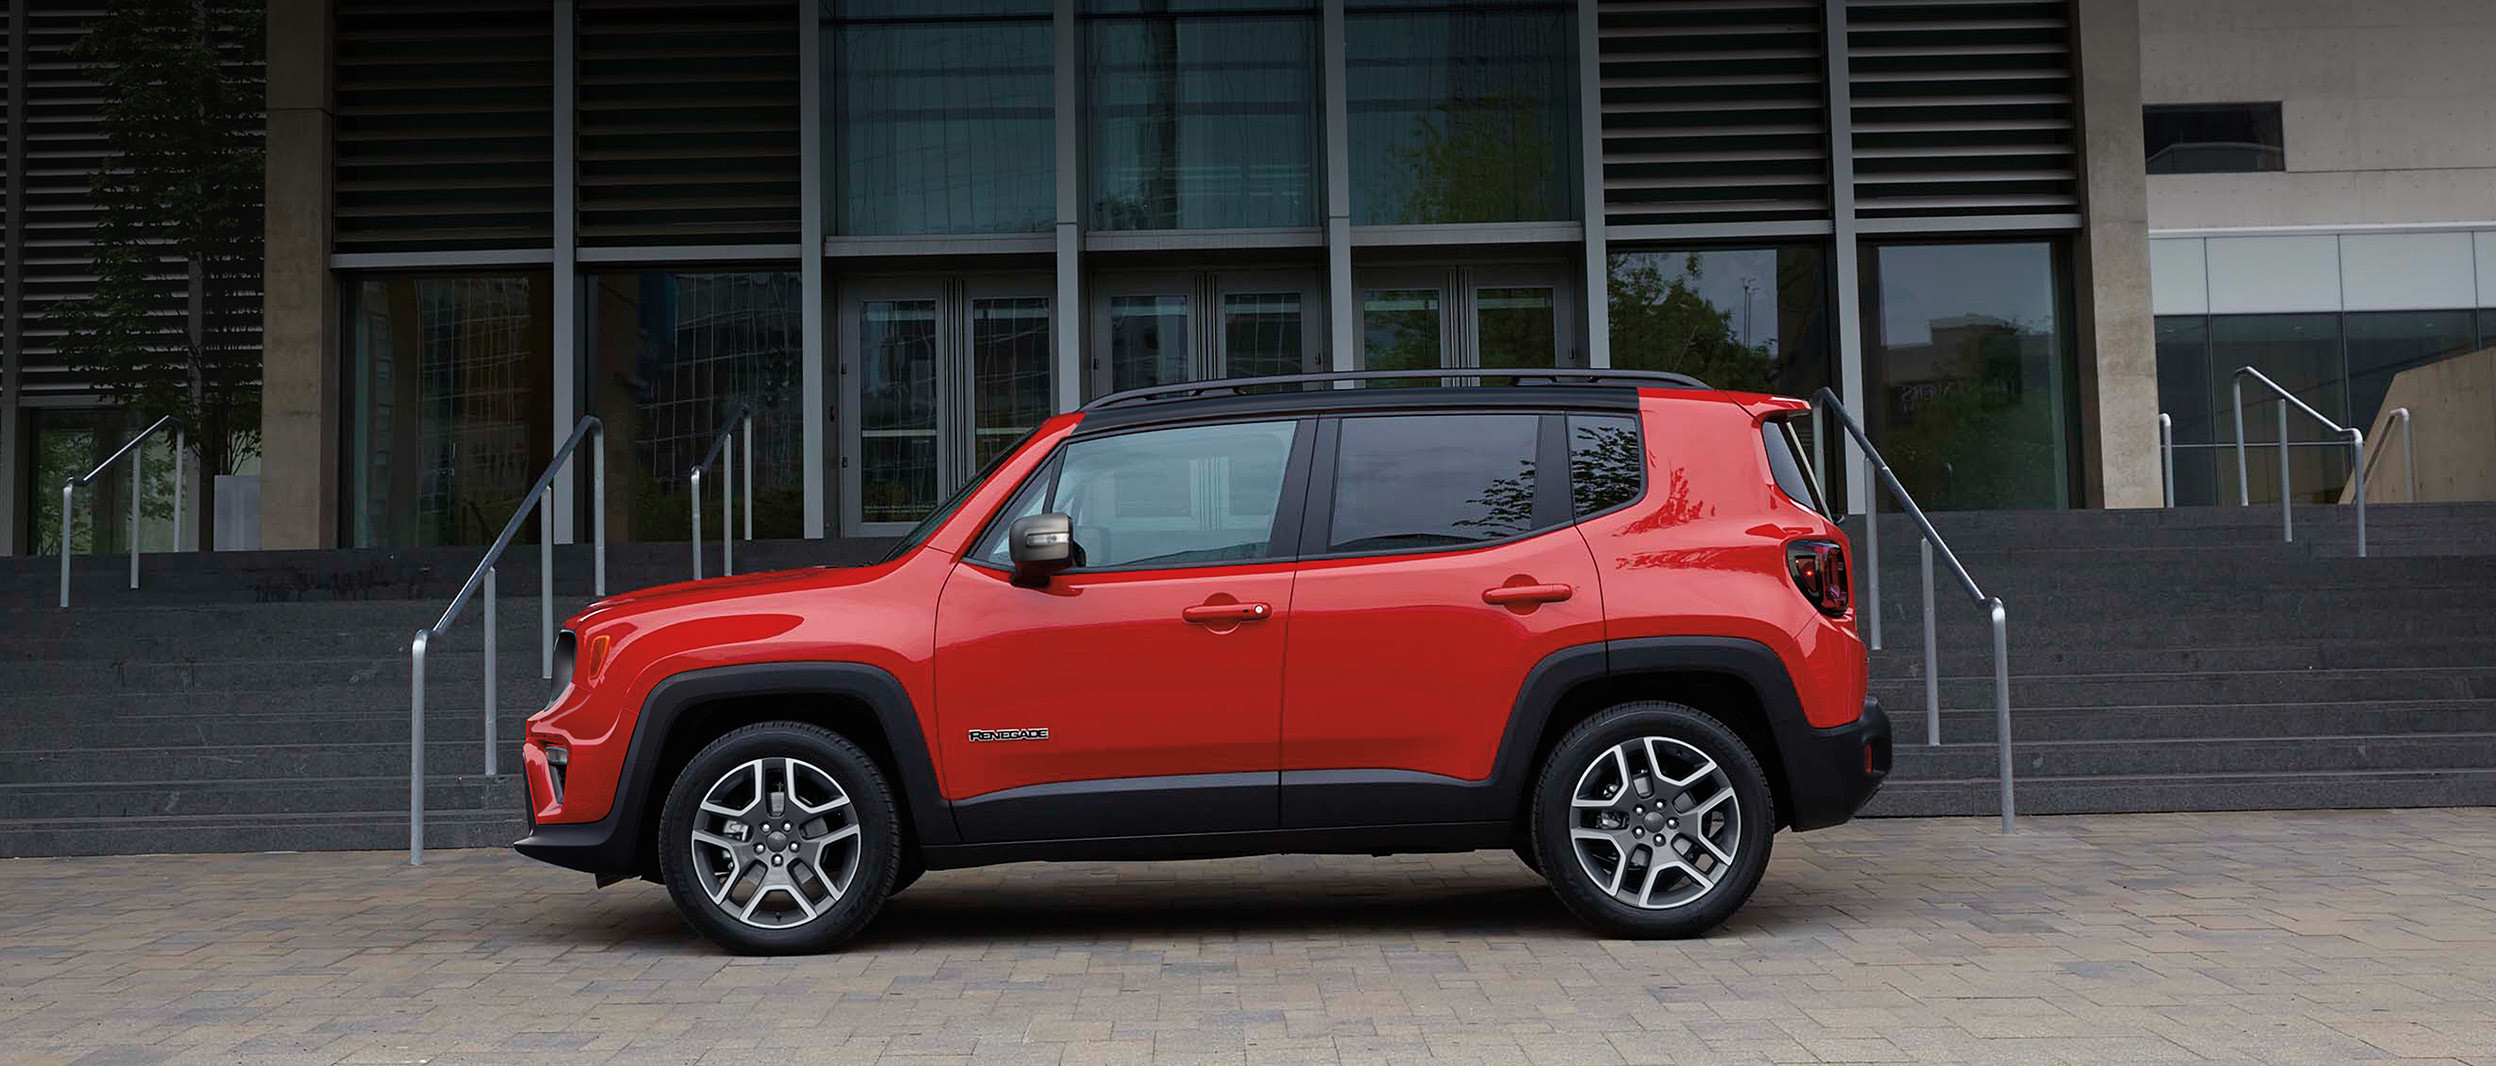 2018 Jeep Renegade: Changes, Design, Features, Price >> 2019 Jeep Renegade Small Suv Jeep Canada